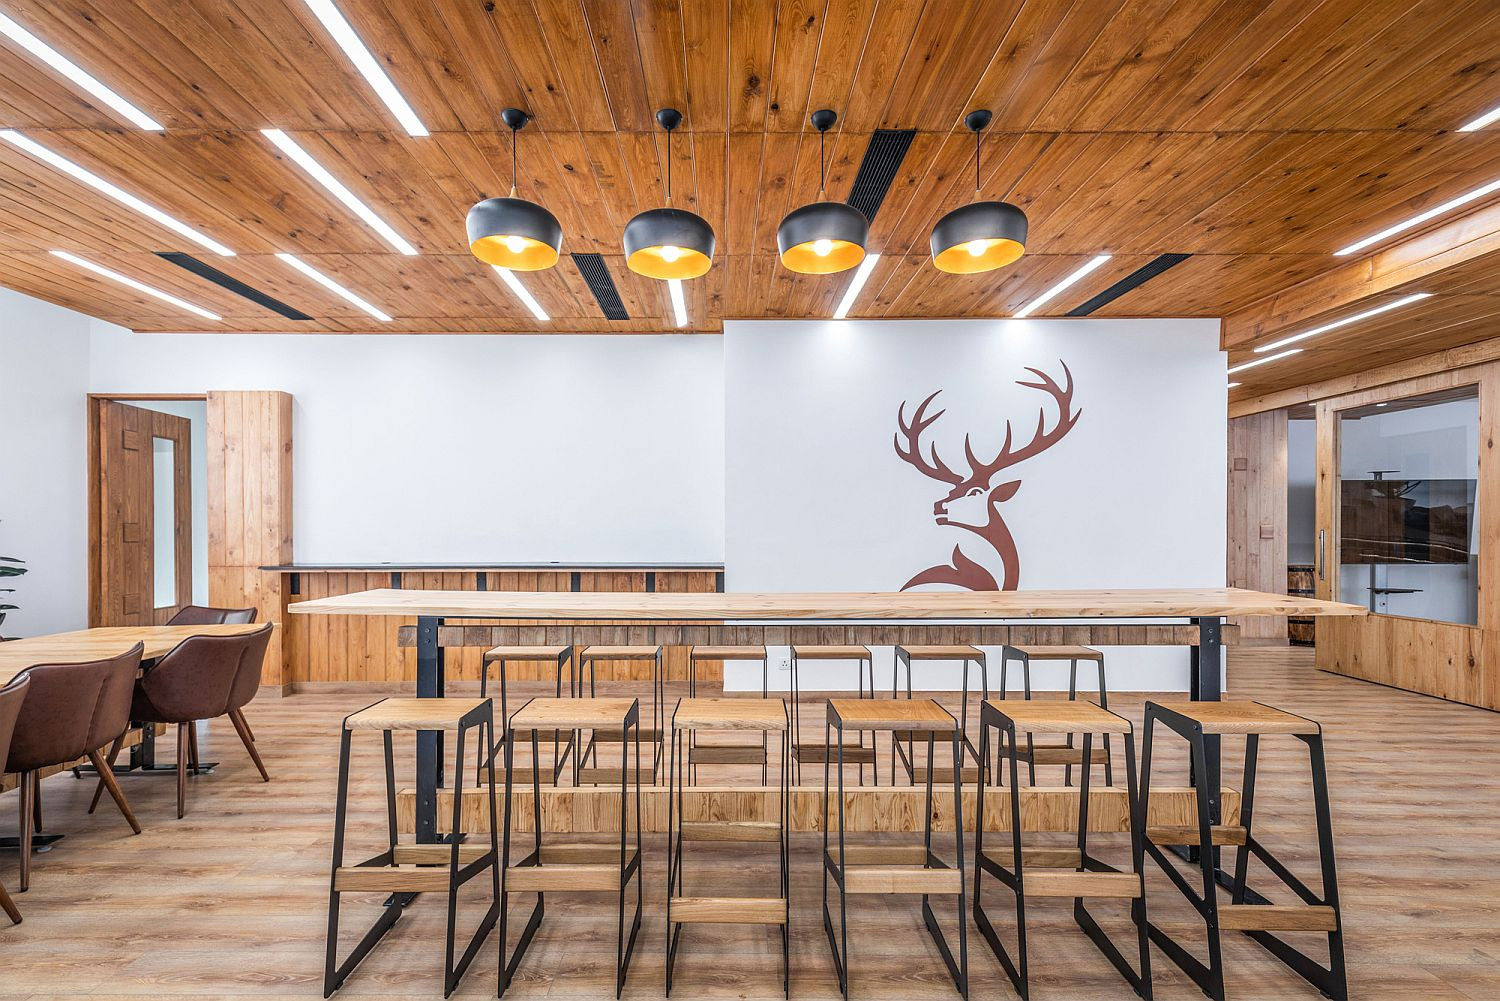 Wooden ceiling and floor give the office a warm inviting look